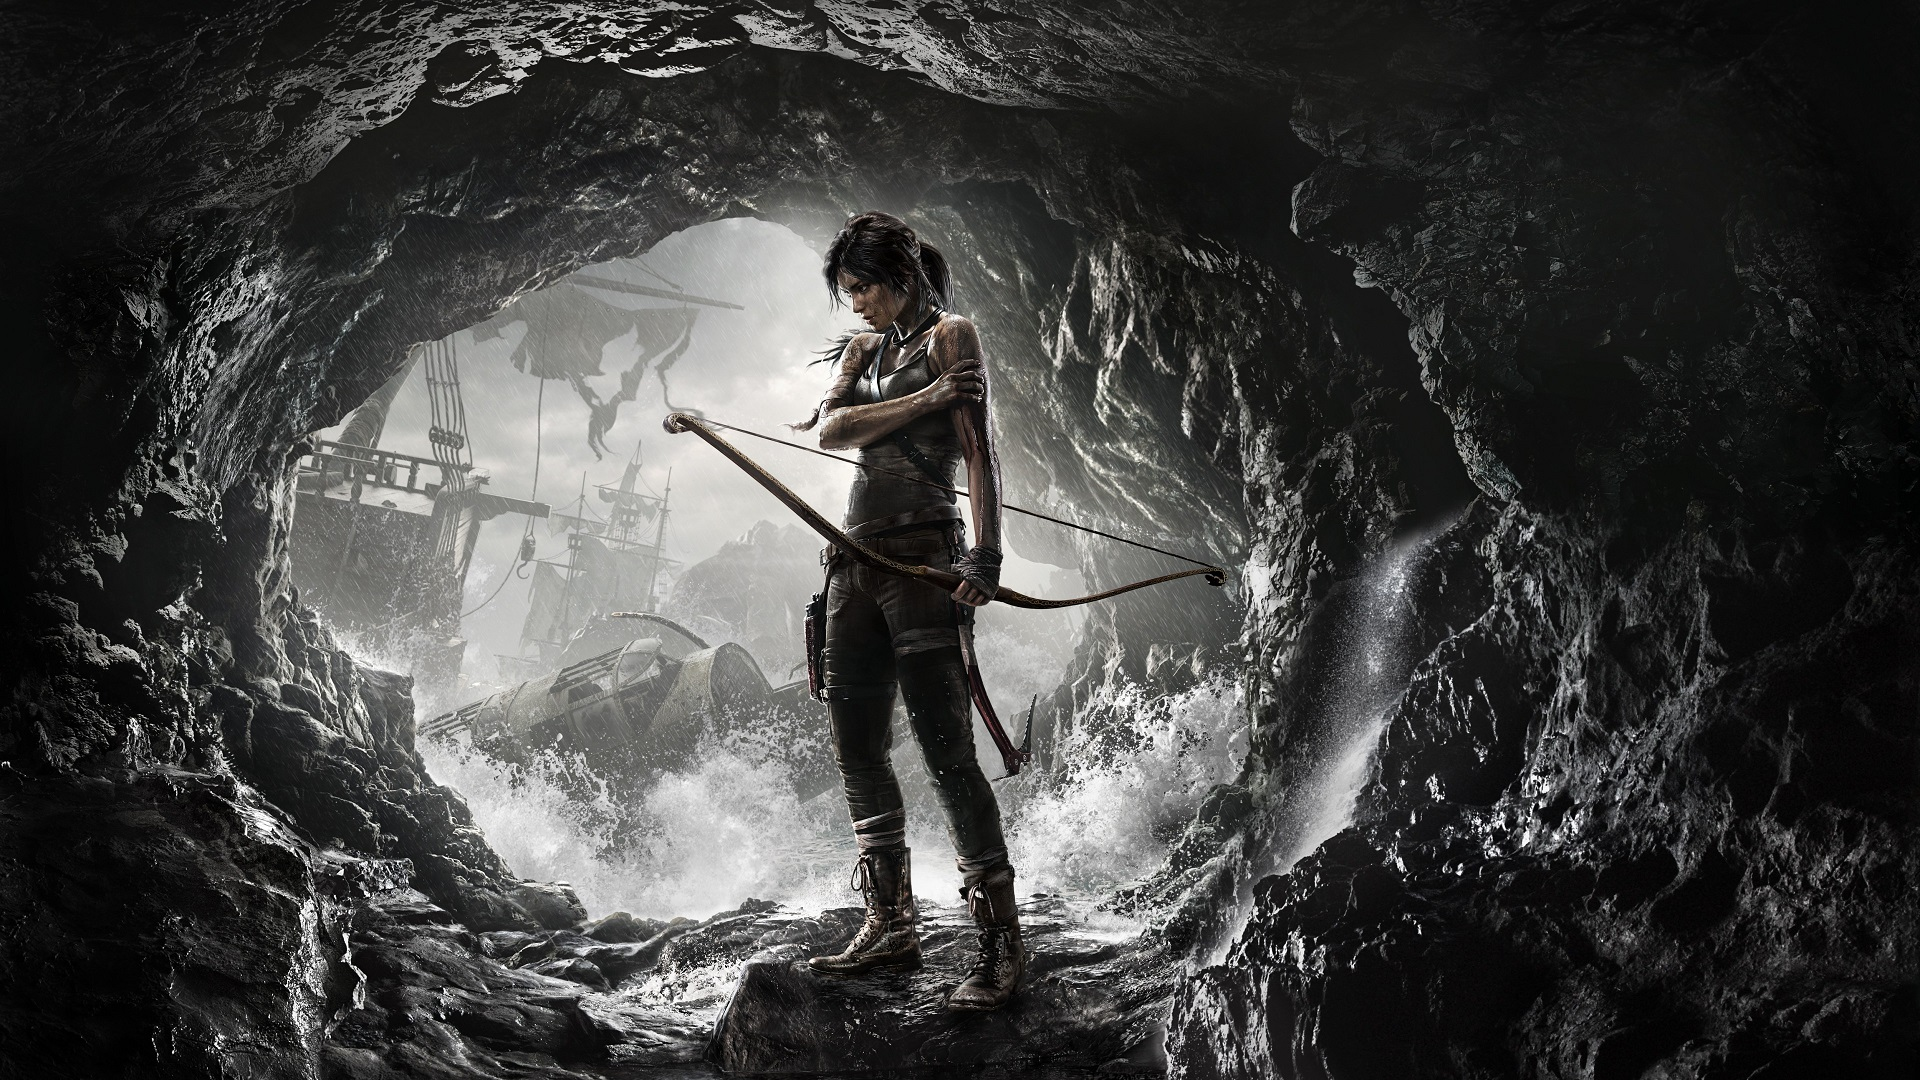 The Last Two Tomb Raider Games Have Combined For 18 Million Sales